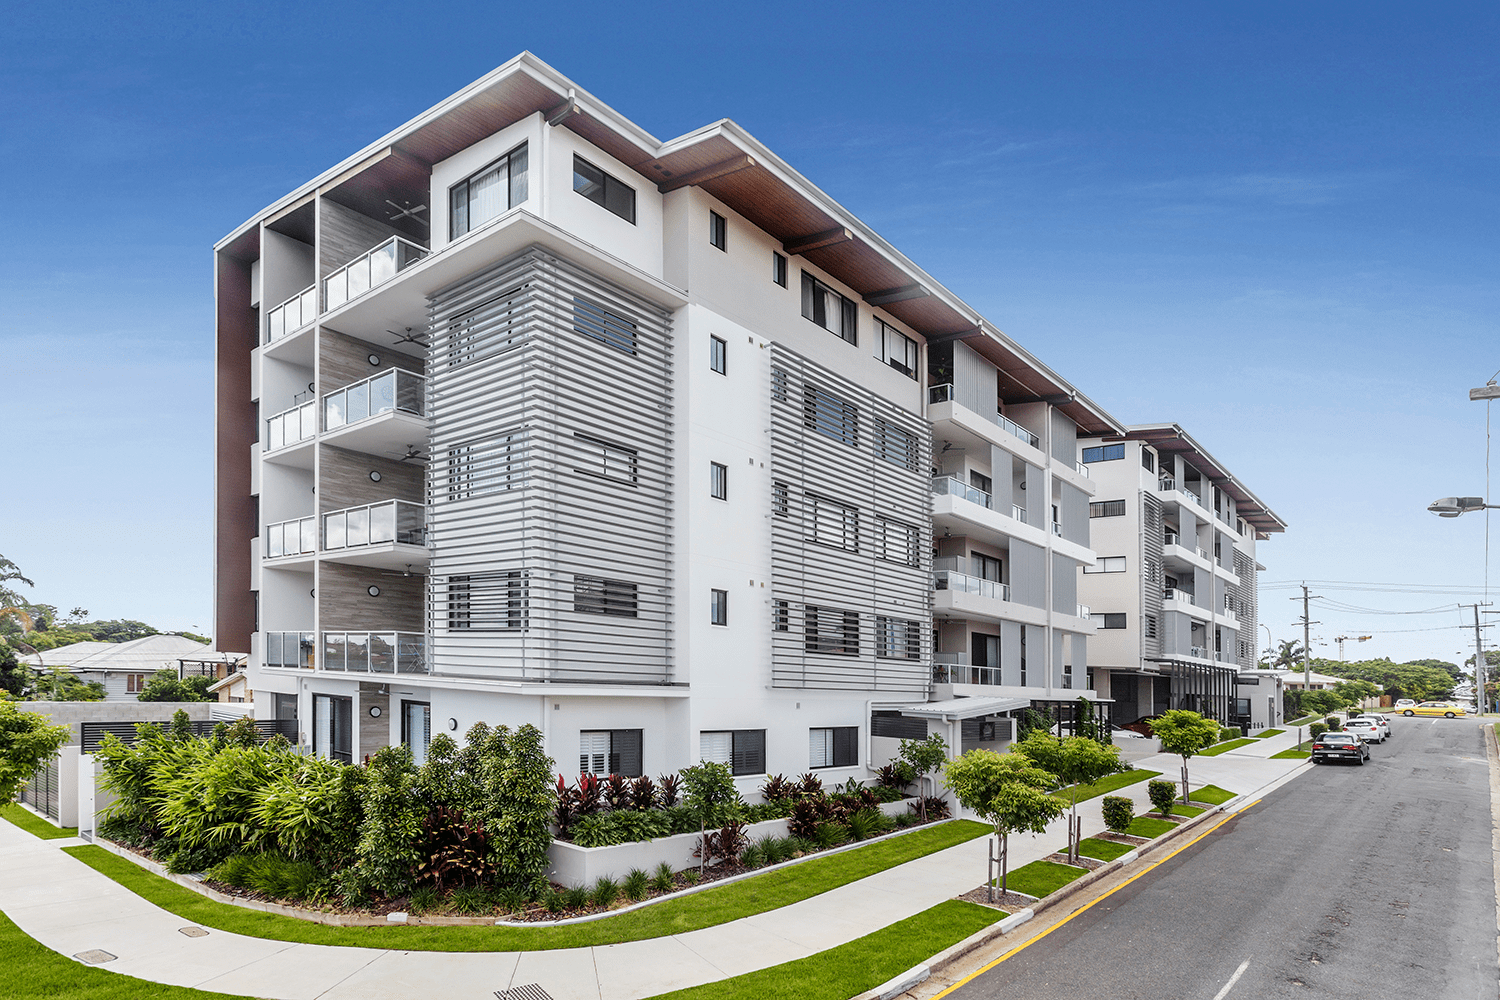 "<p class=""project-name""> Lumley St, Upper Mount Gravatt</br><p class=""project-category"">Multi-residential</p>"